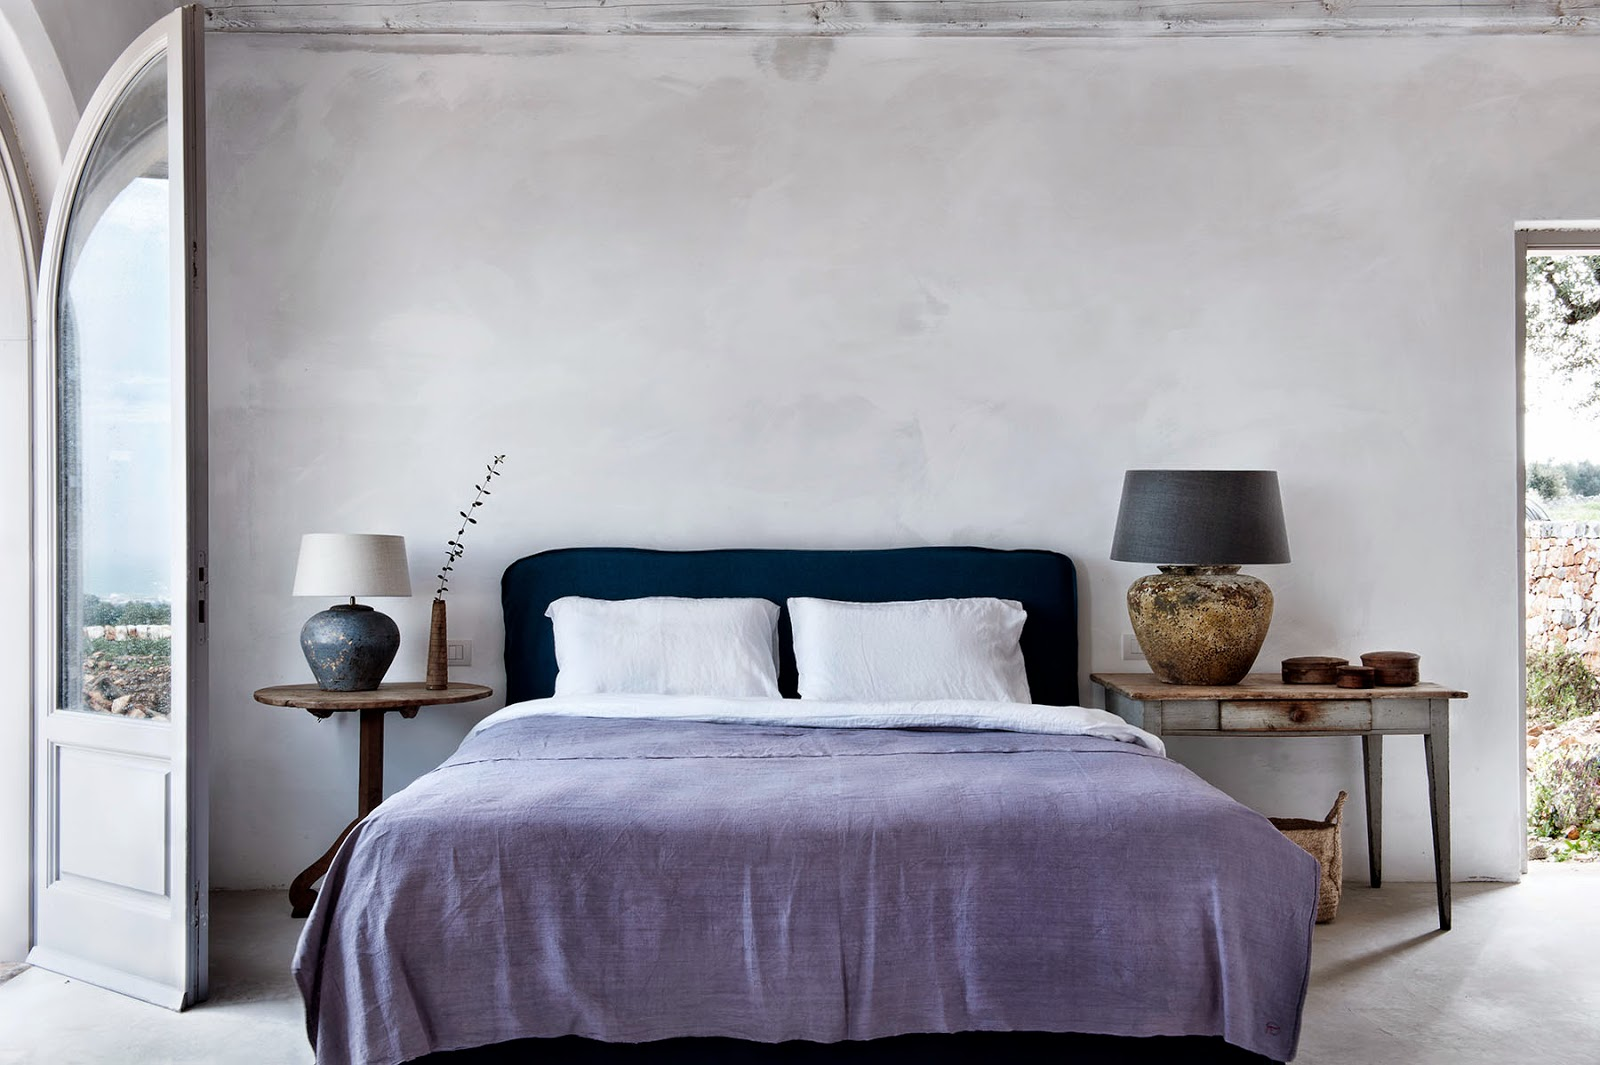 serene bedroom with lovely lamps